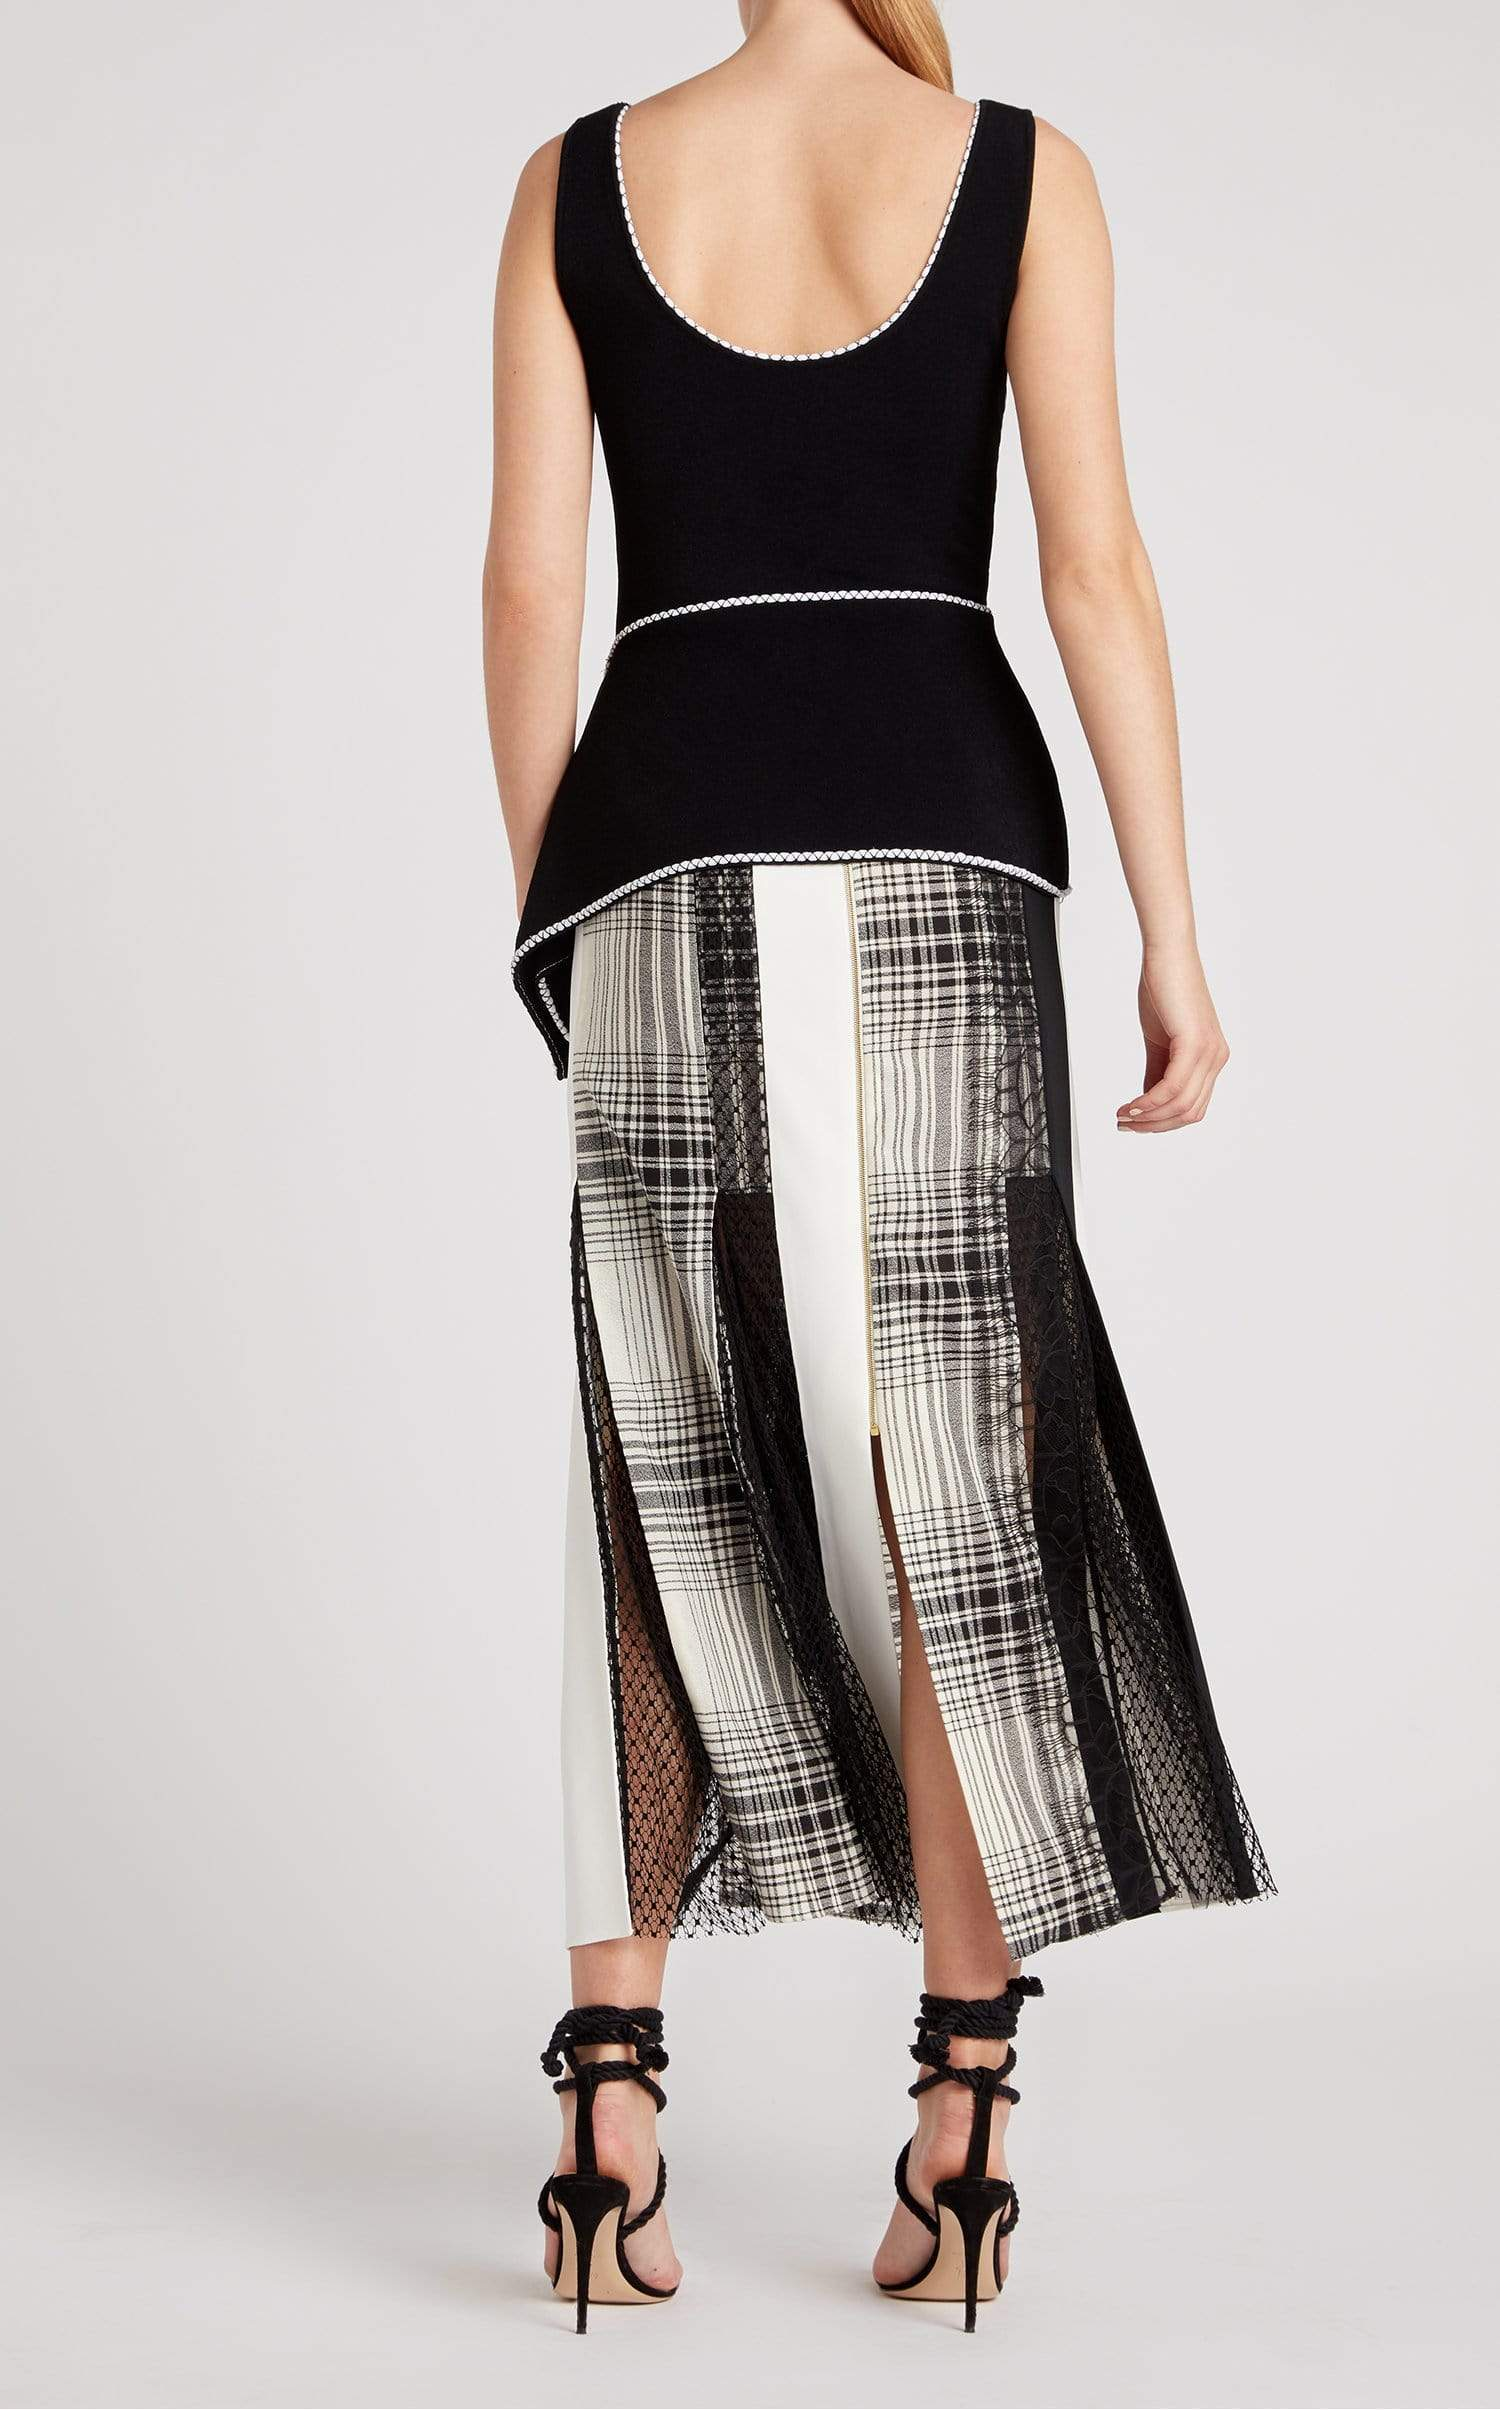 Millport Top In Black/White from Roland Mouret